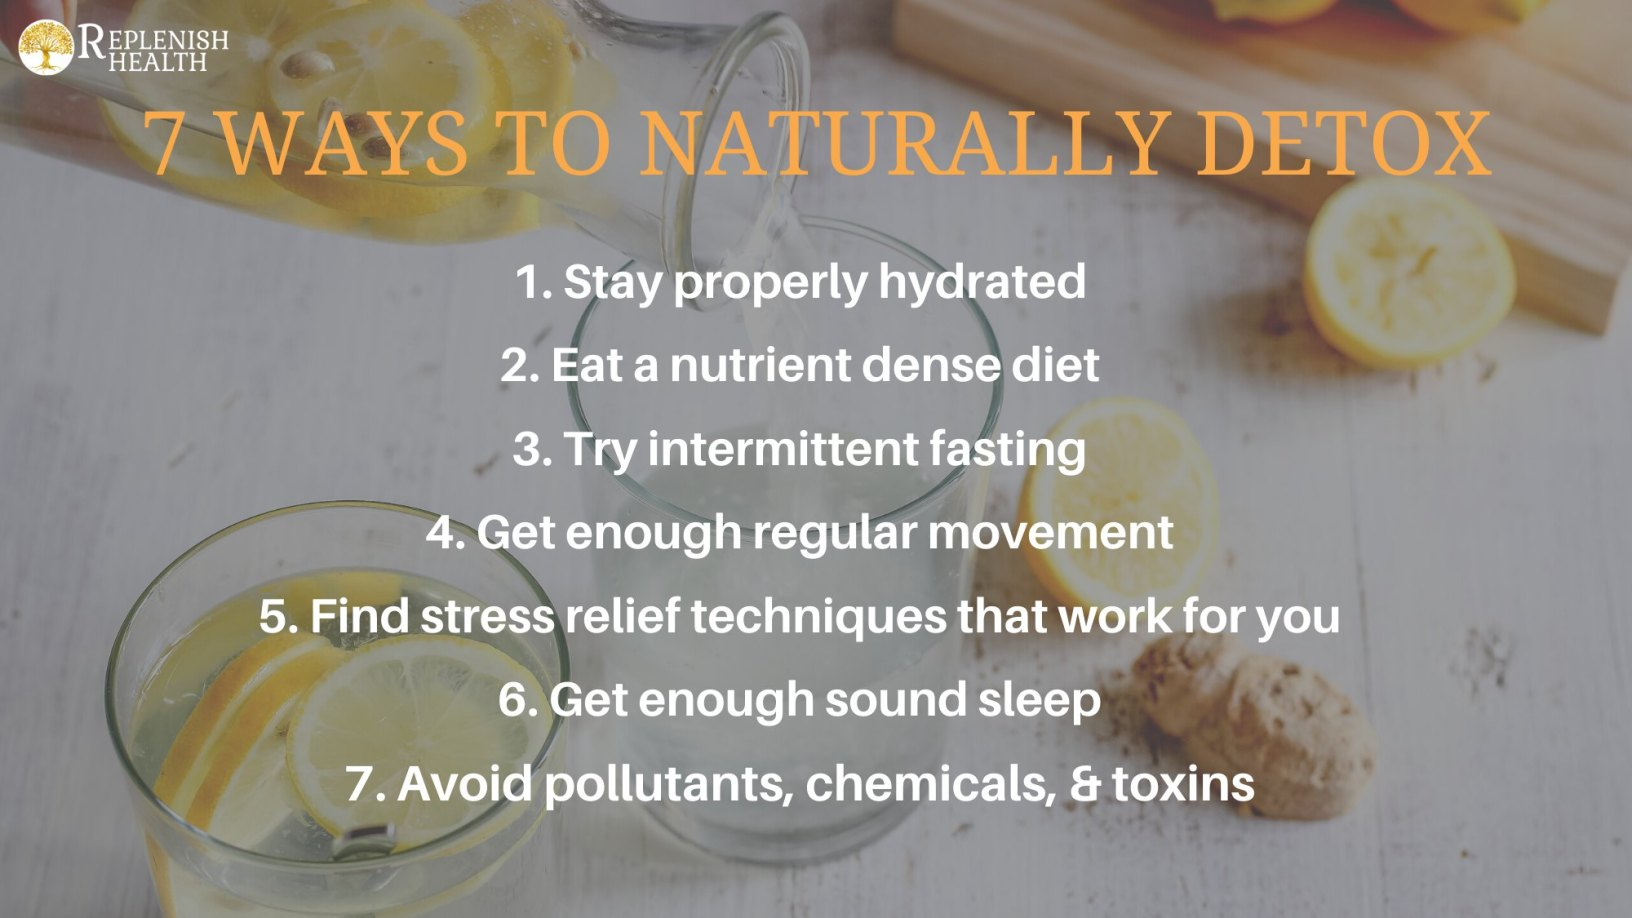 An image of 7 Ways To Naturally Detox